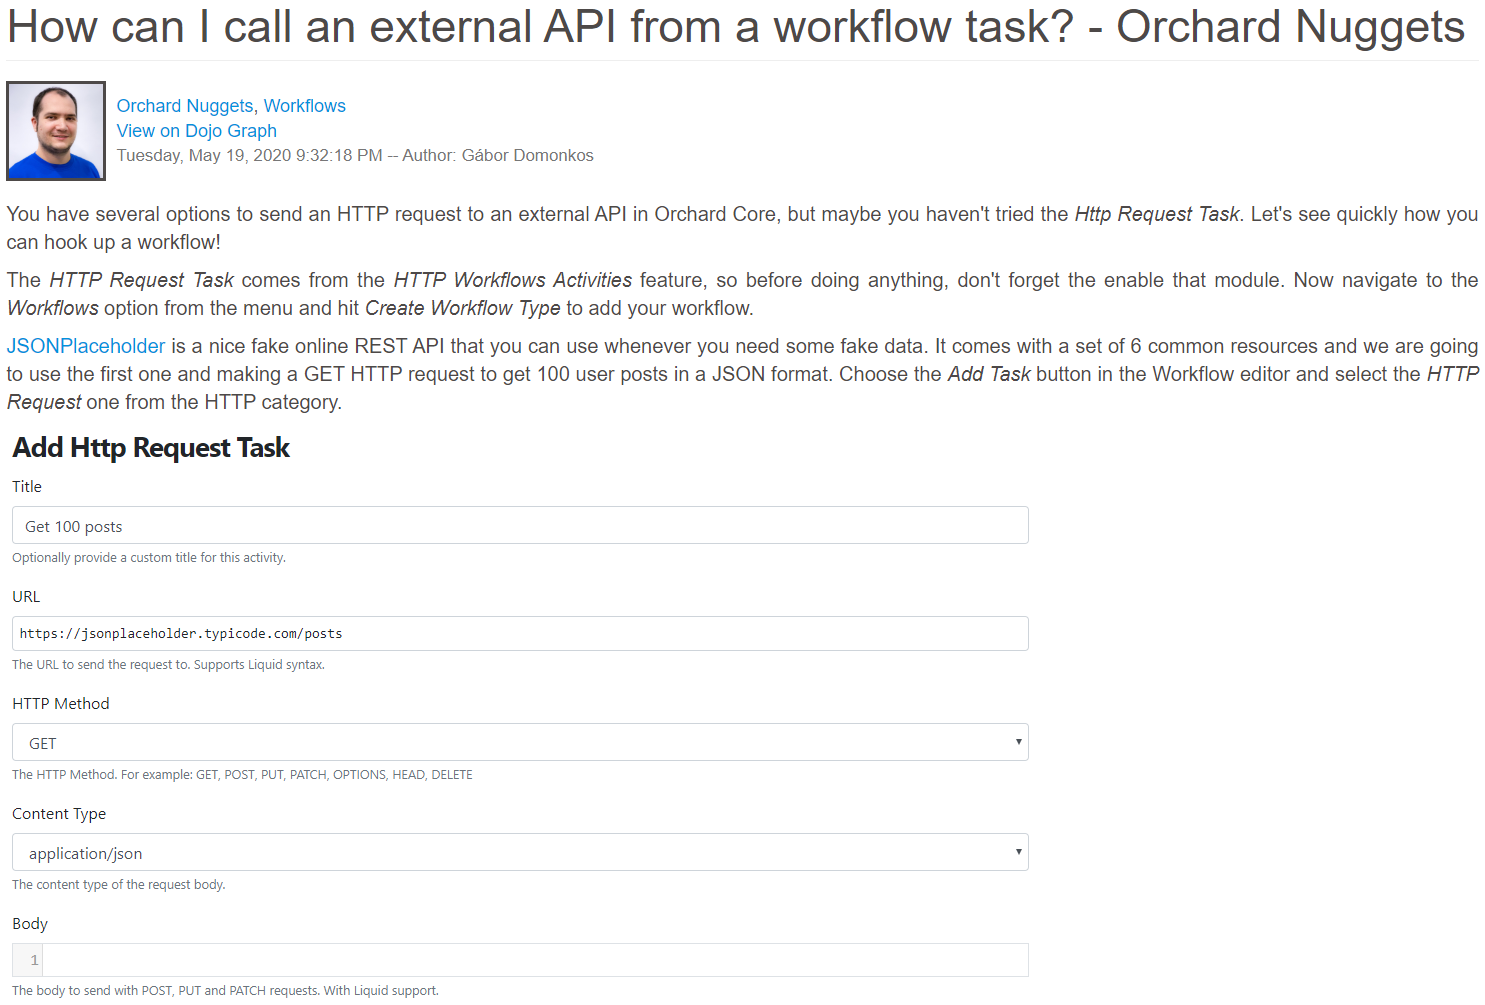 Orchard Nuggets post about calling external API from workflows